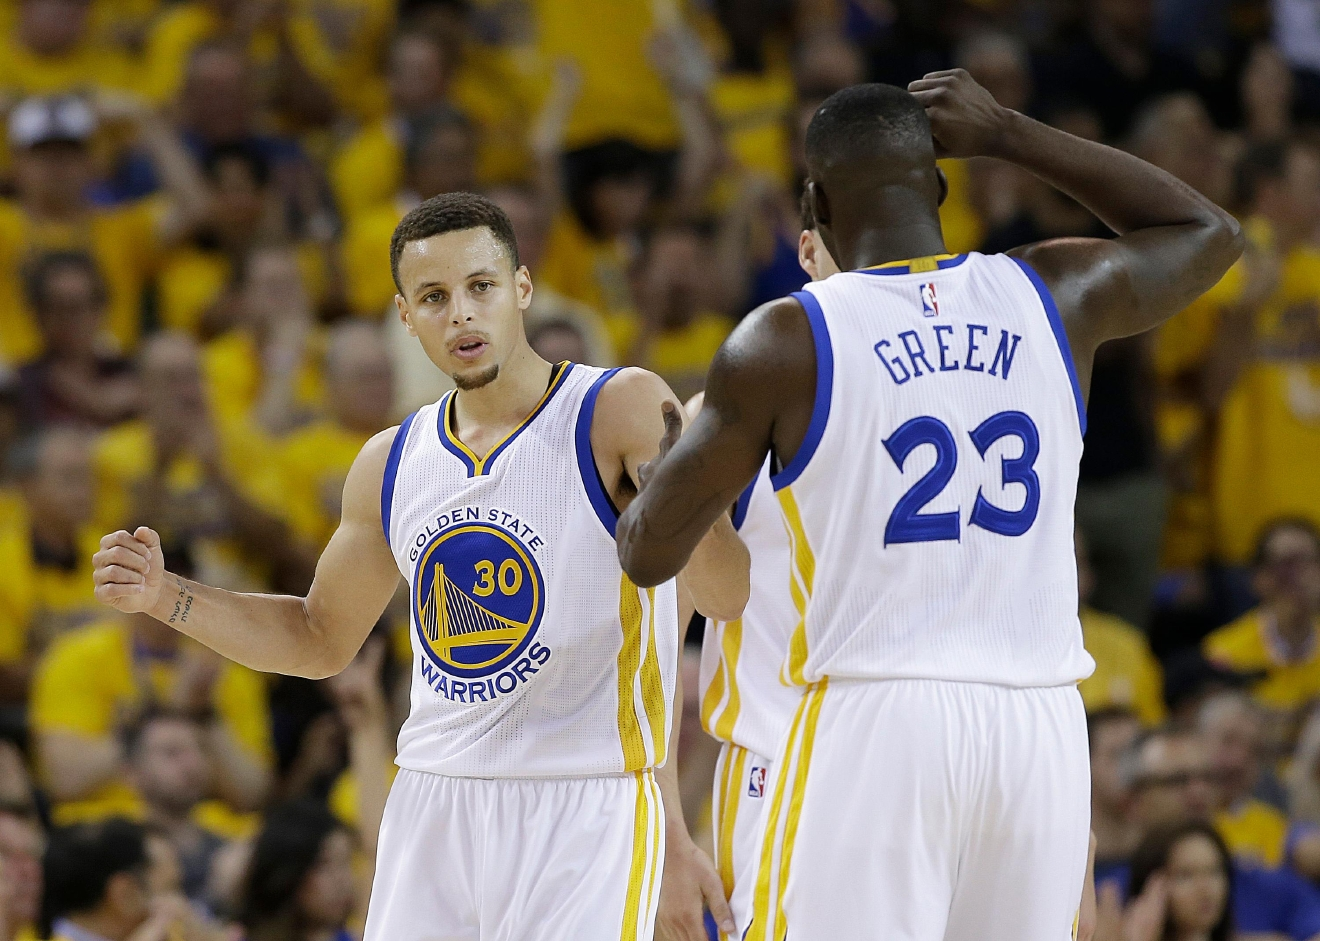 Golden State Warriors guard Stephen Curry (30) and forward Draymond Green (23) react after scoring against the Oklahoma City Thunder during the first half of Game 2 of the NBA basketball Western Conference finals in Oakland, Calif., Wednesday, May 18, 2016. (AP Photo/Marcio Jose Sanchez)